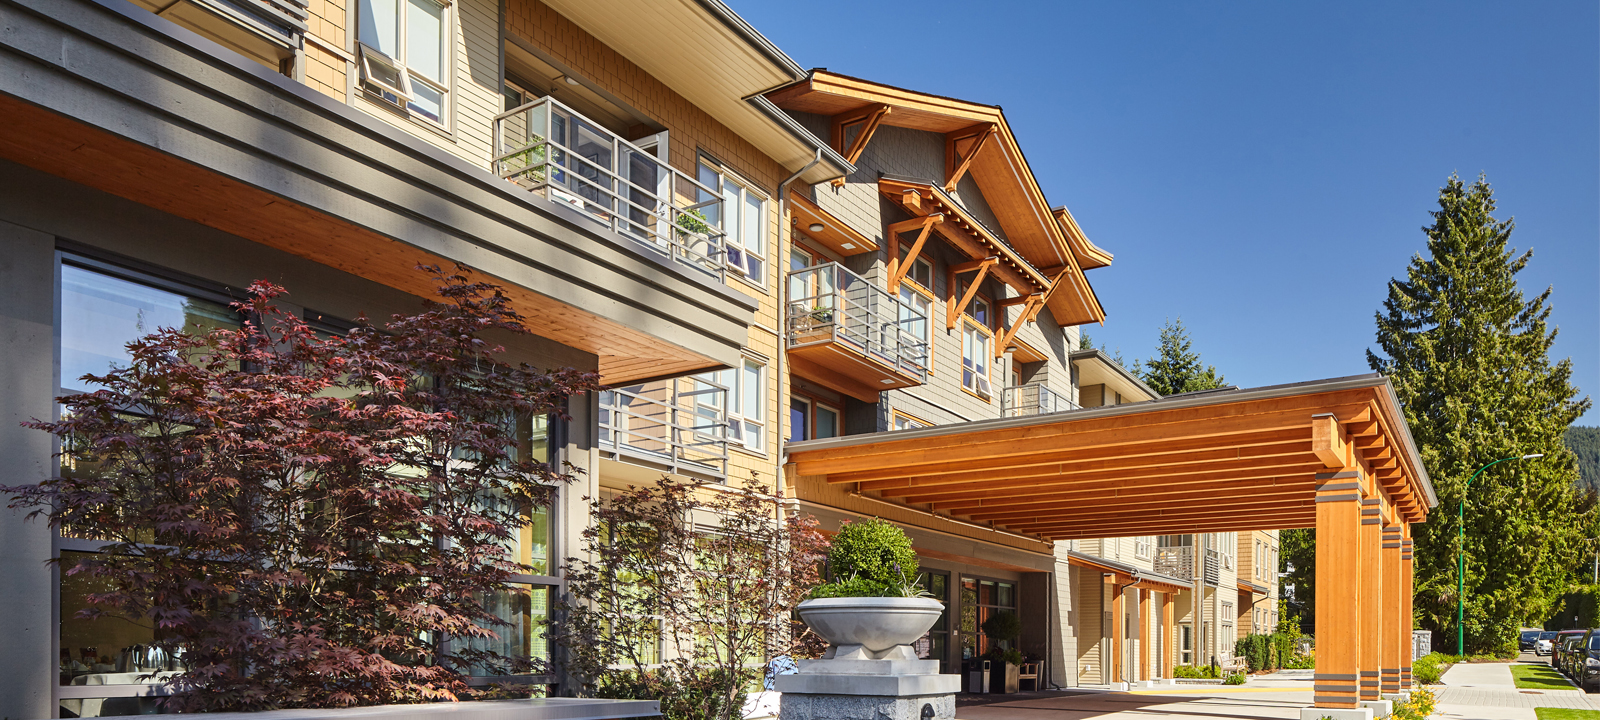 Exterior view of Amica Edgemont senior retirement residence.